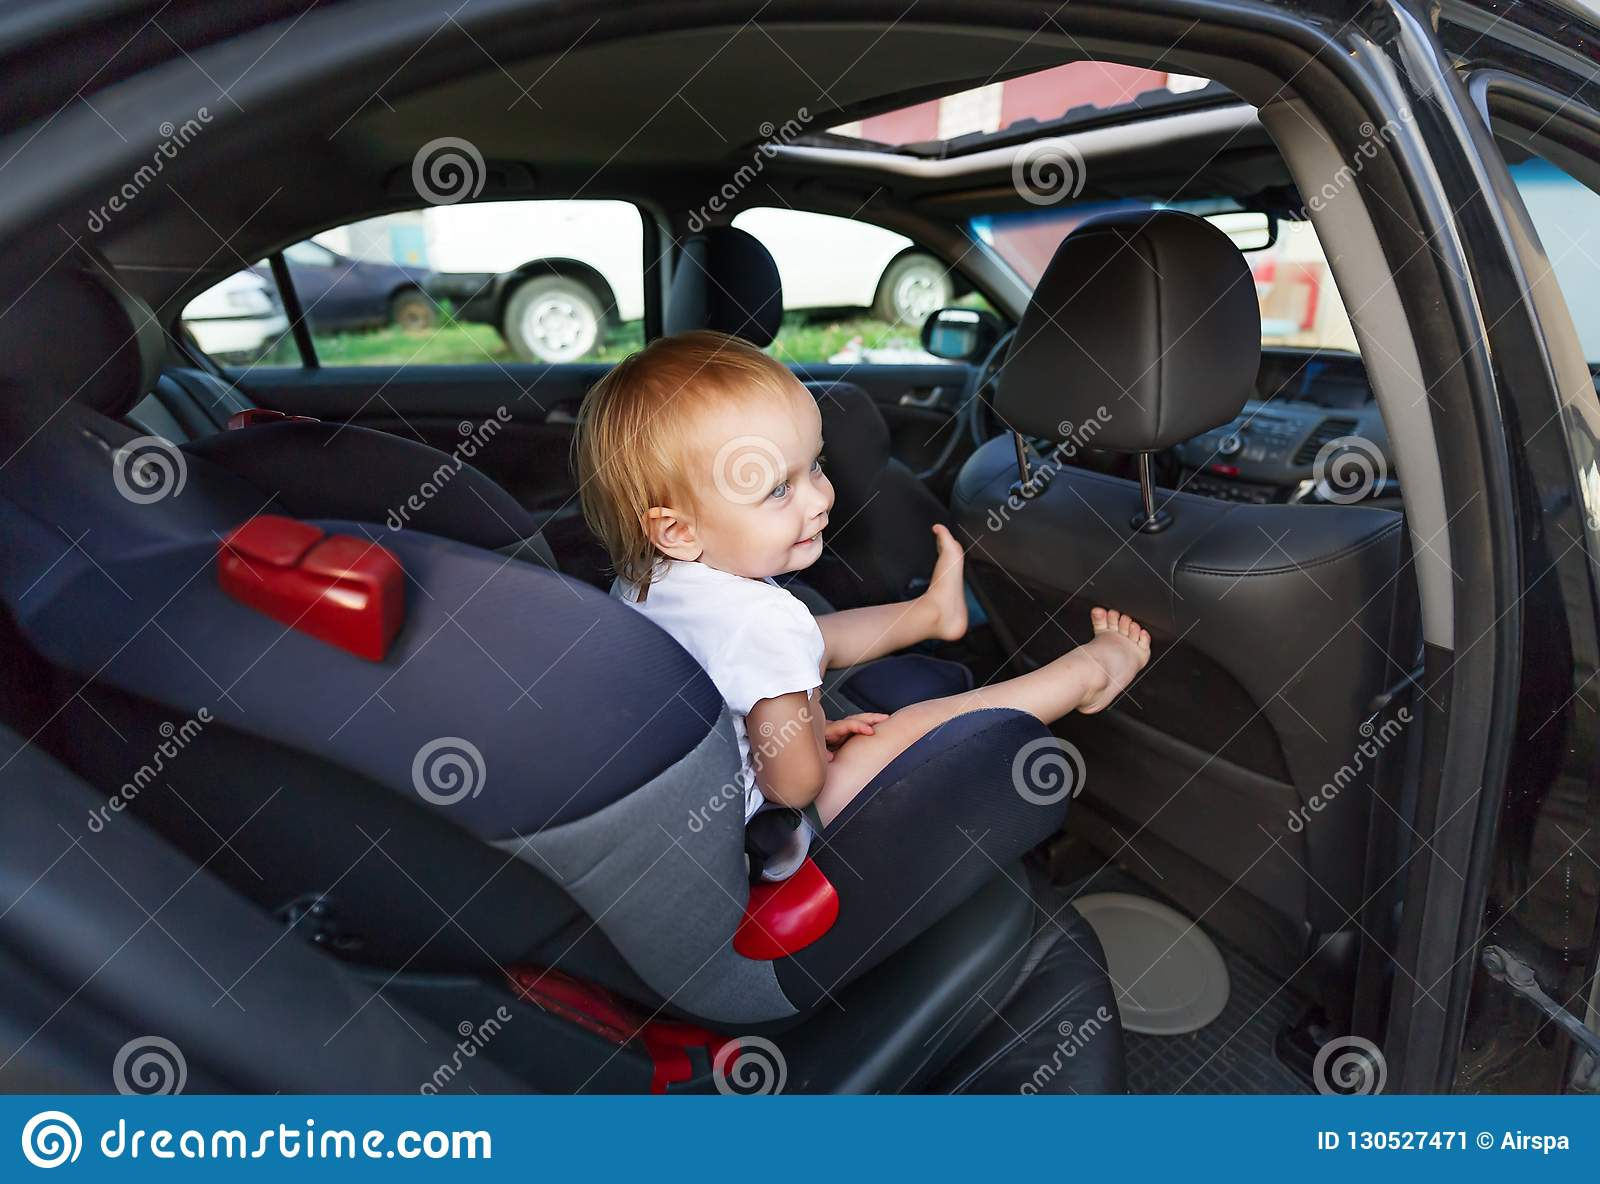 Car Seats For Three Year Olds >> Three Year Old Girl Sitting In Car Seat Stock Image Image